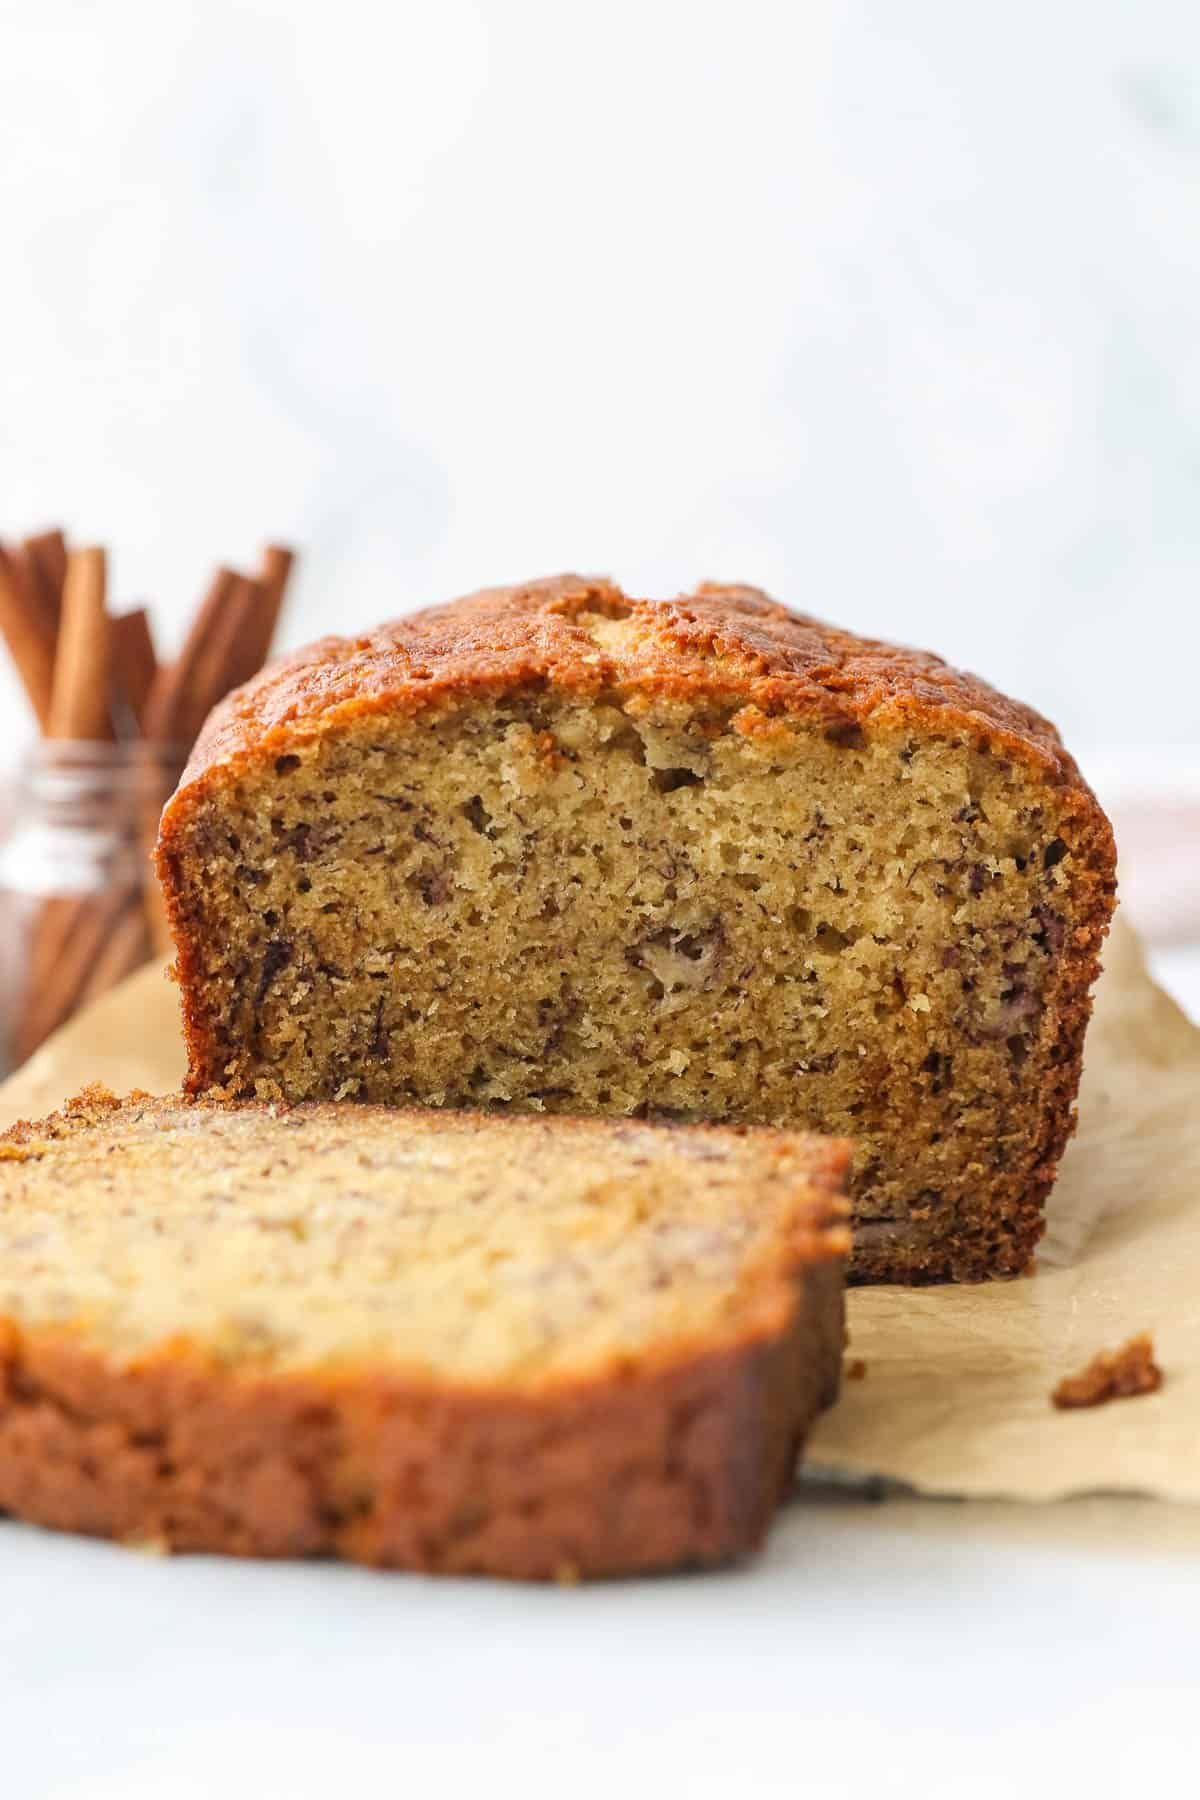 A loaf of banana bread with a slice cut off.